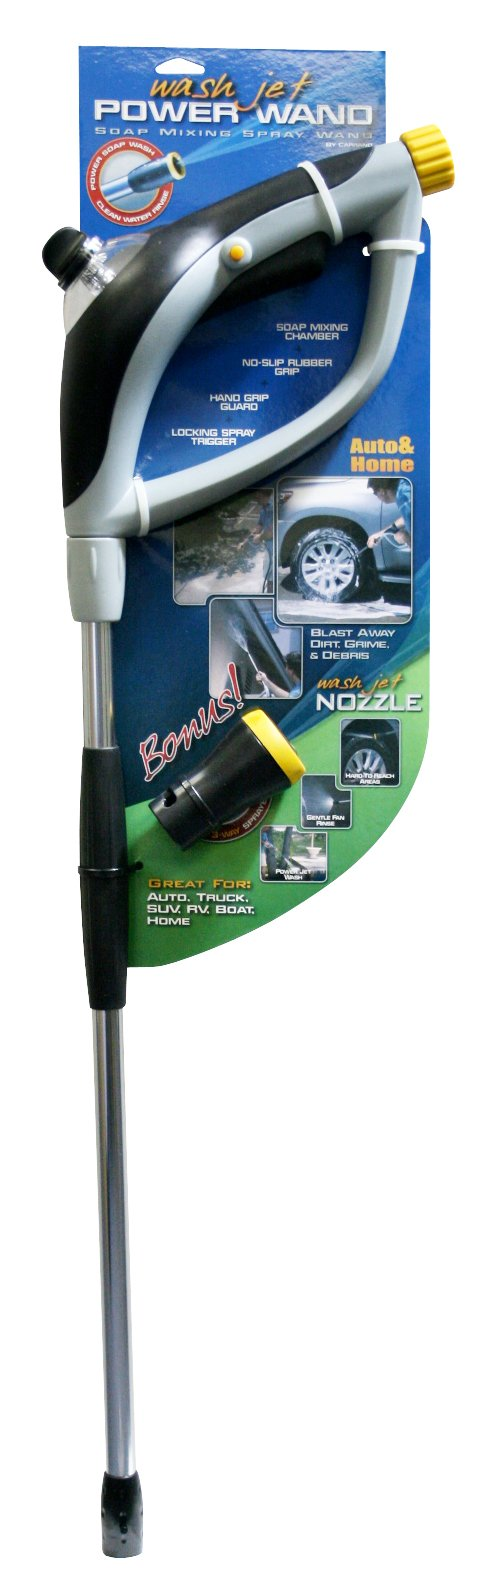 Carrand 92217 Wash Jet Power Wand with 3-Way Adjustable Nozzle